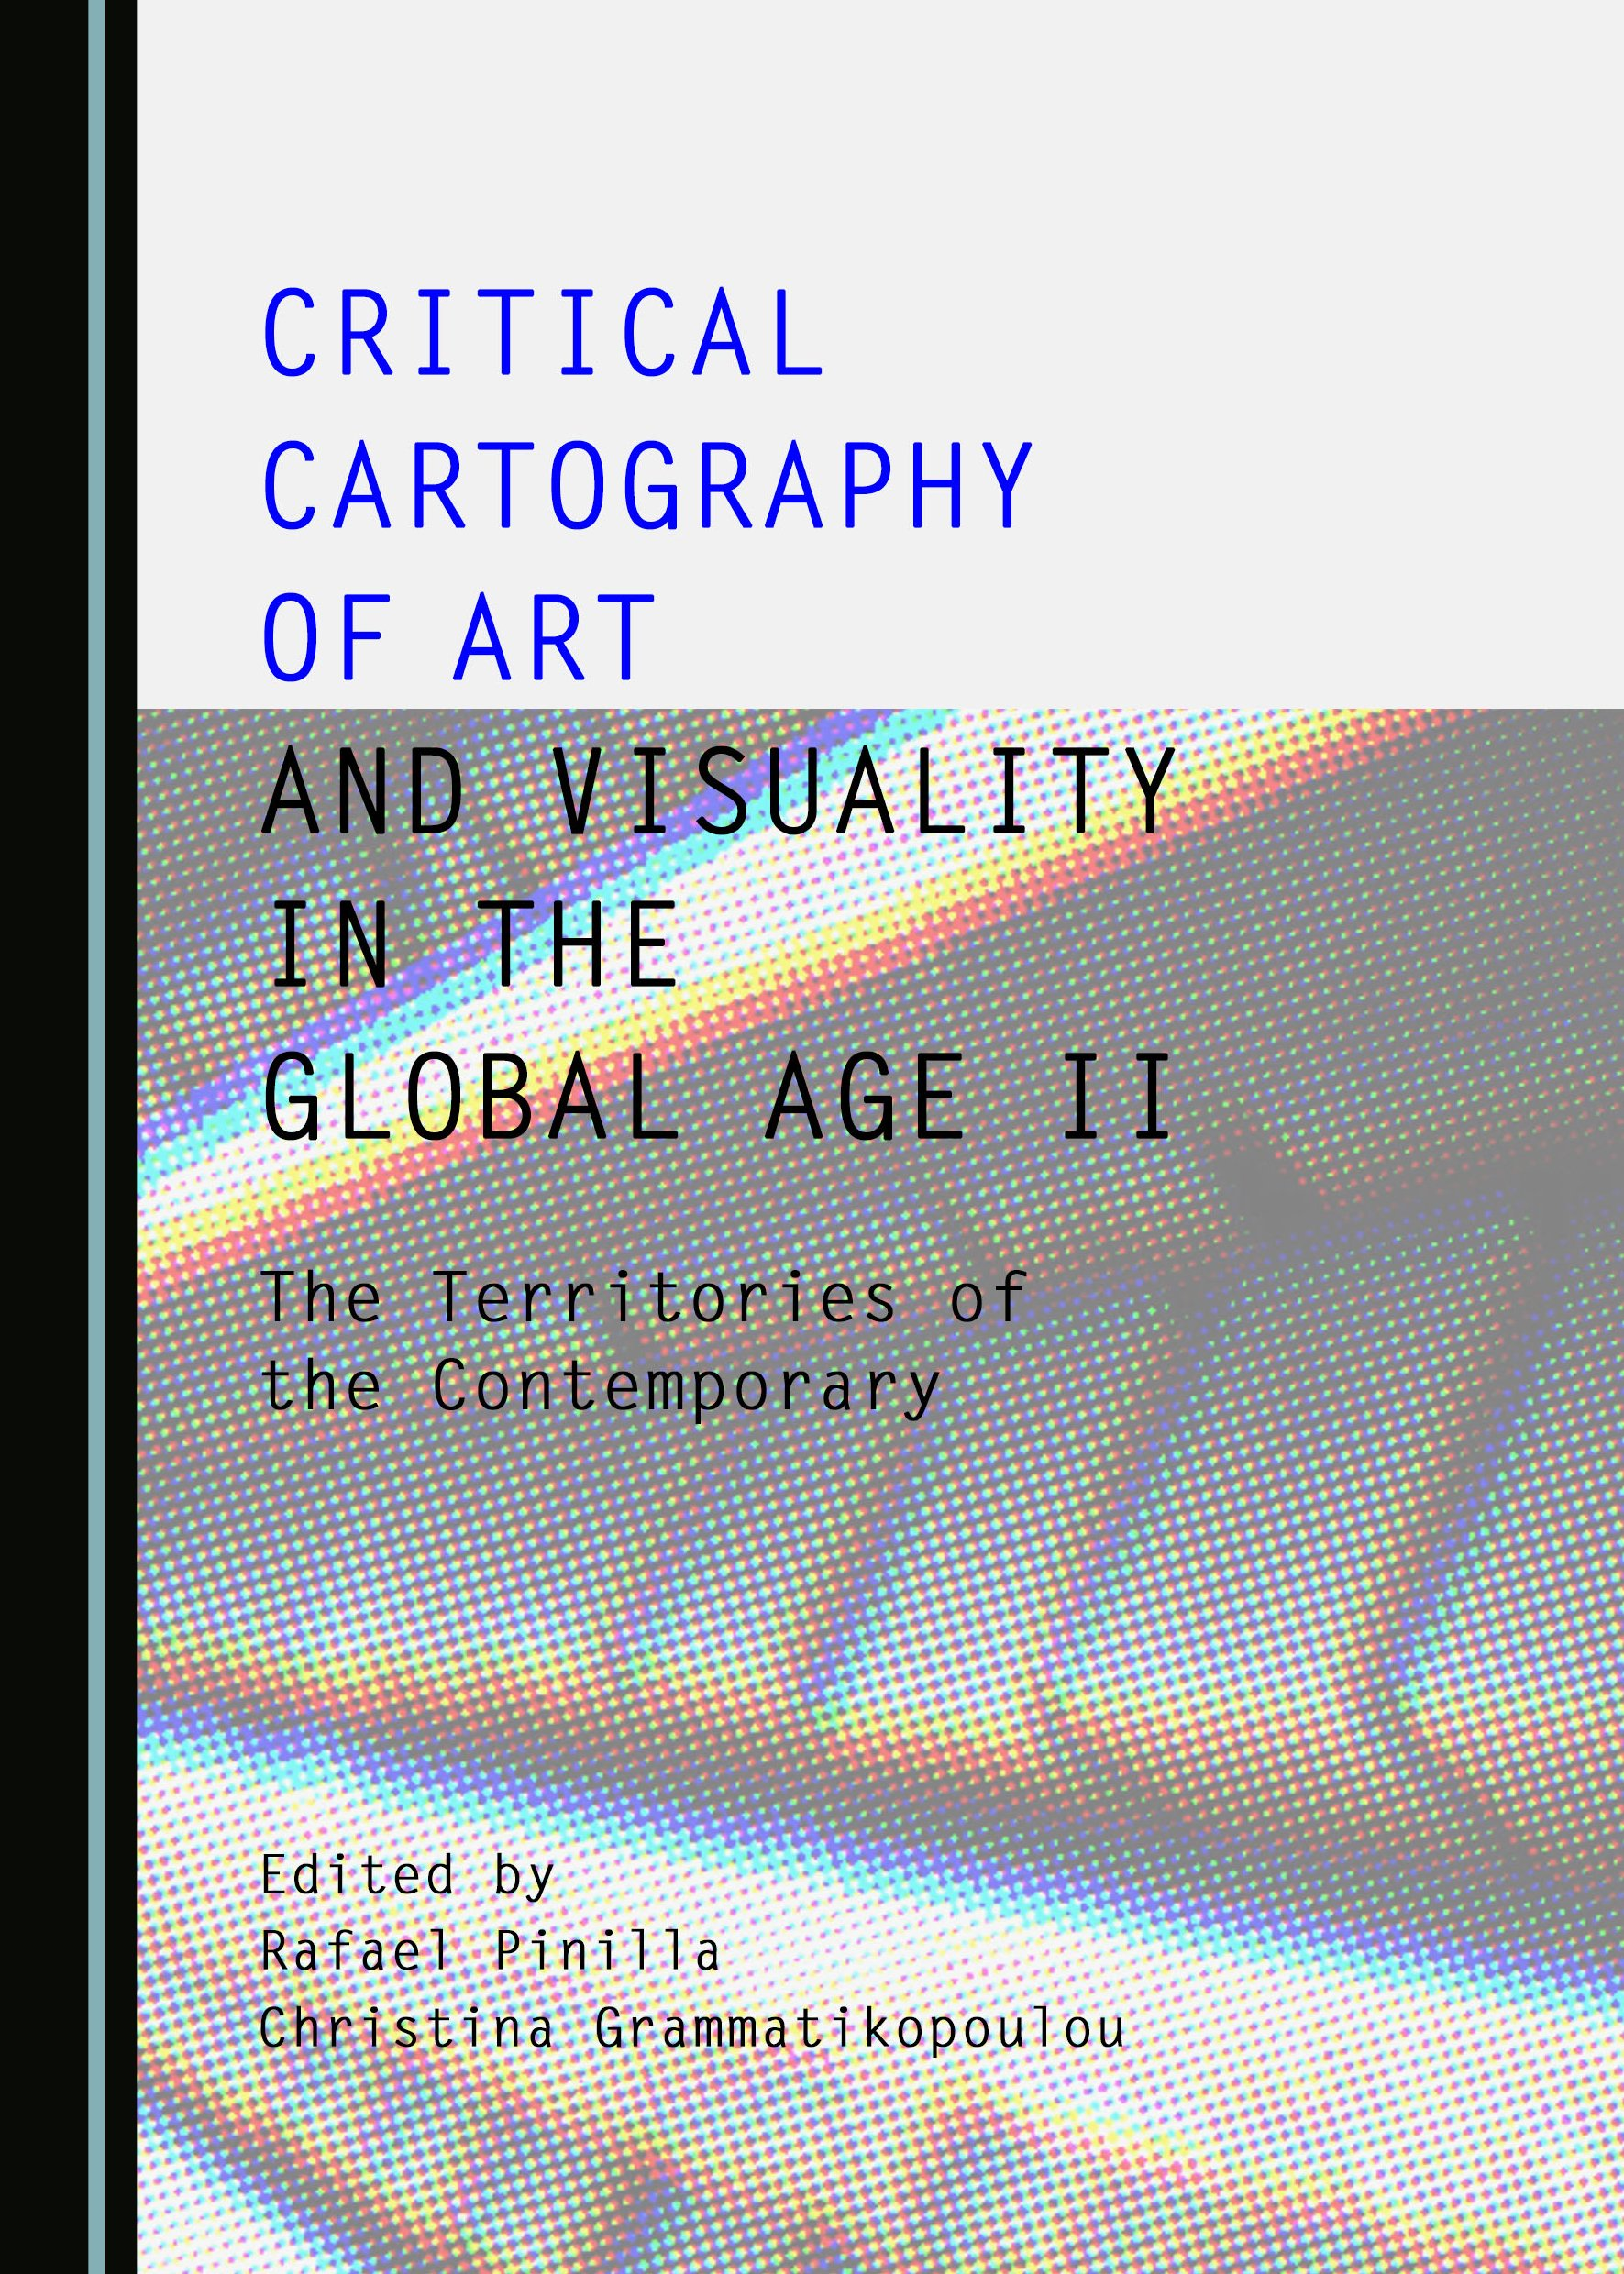 Critical Cartography of Art and Visuality in the Global Age II: The Territories of the Contemporary